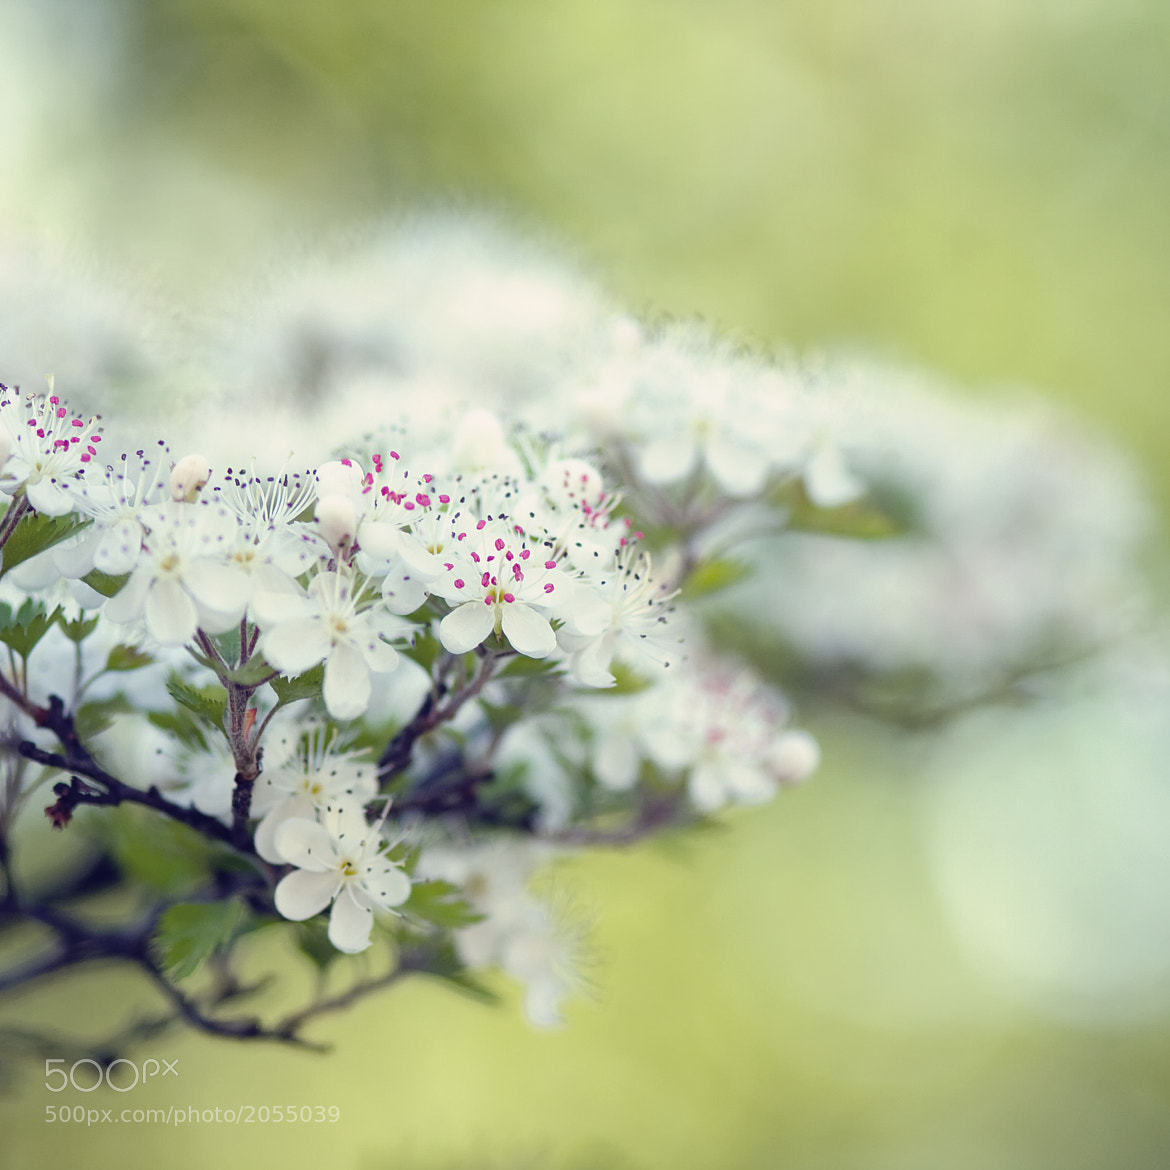 Photograph Blossoms by Joel Olives on 500px